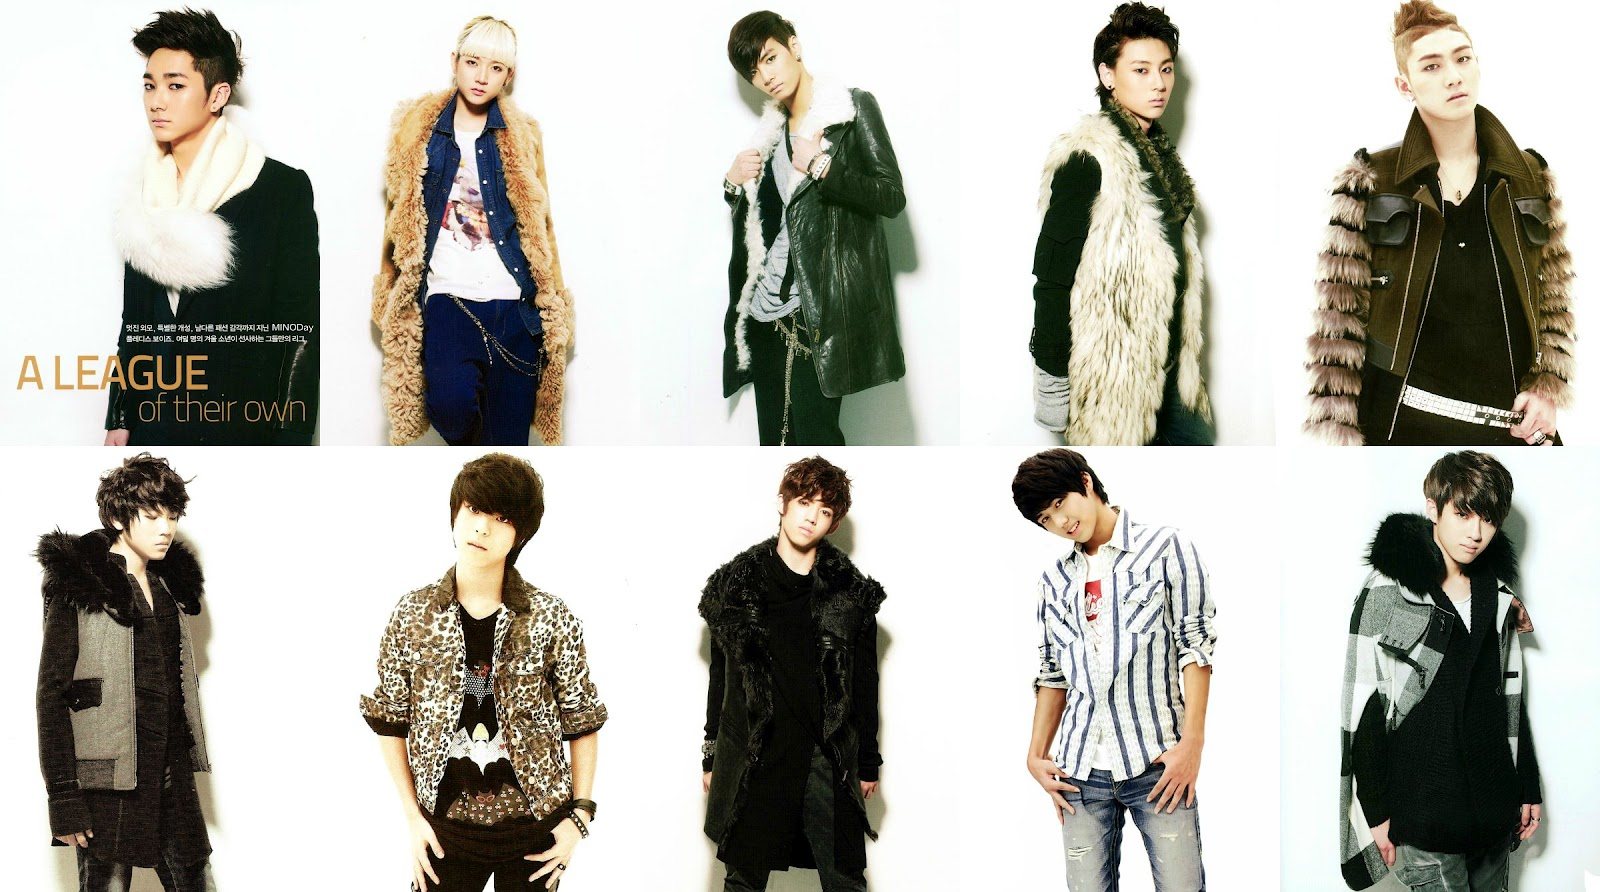 Awesome Tempest Kpop 2021 wallpapers to download for free greenvirals